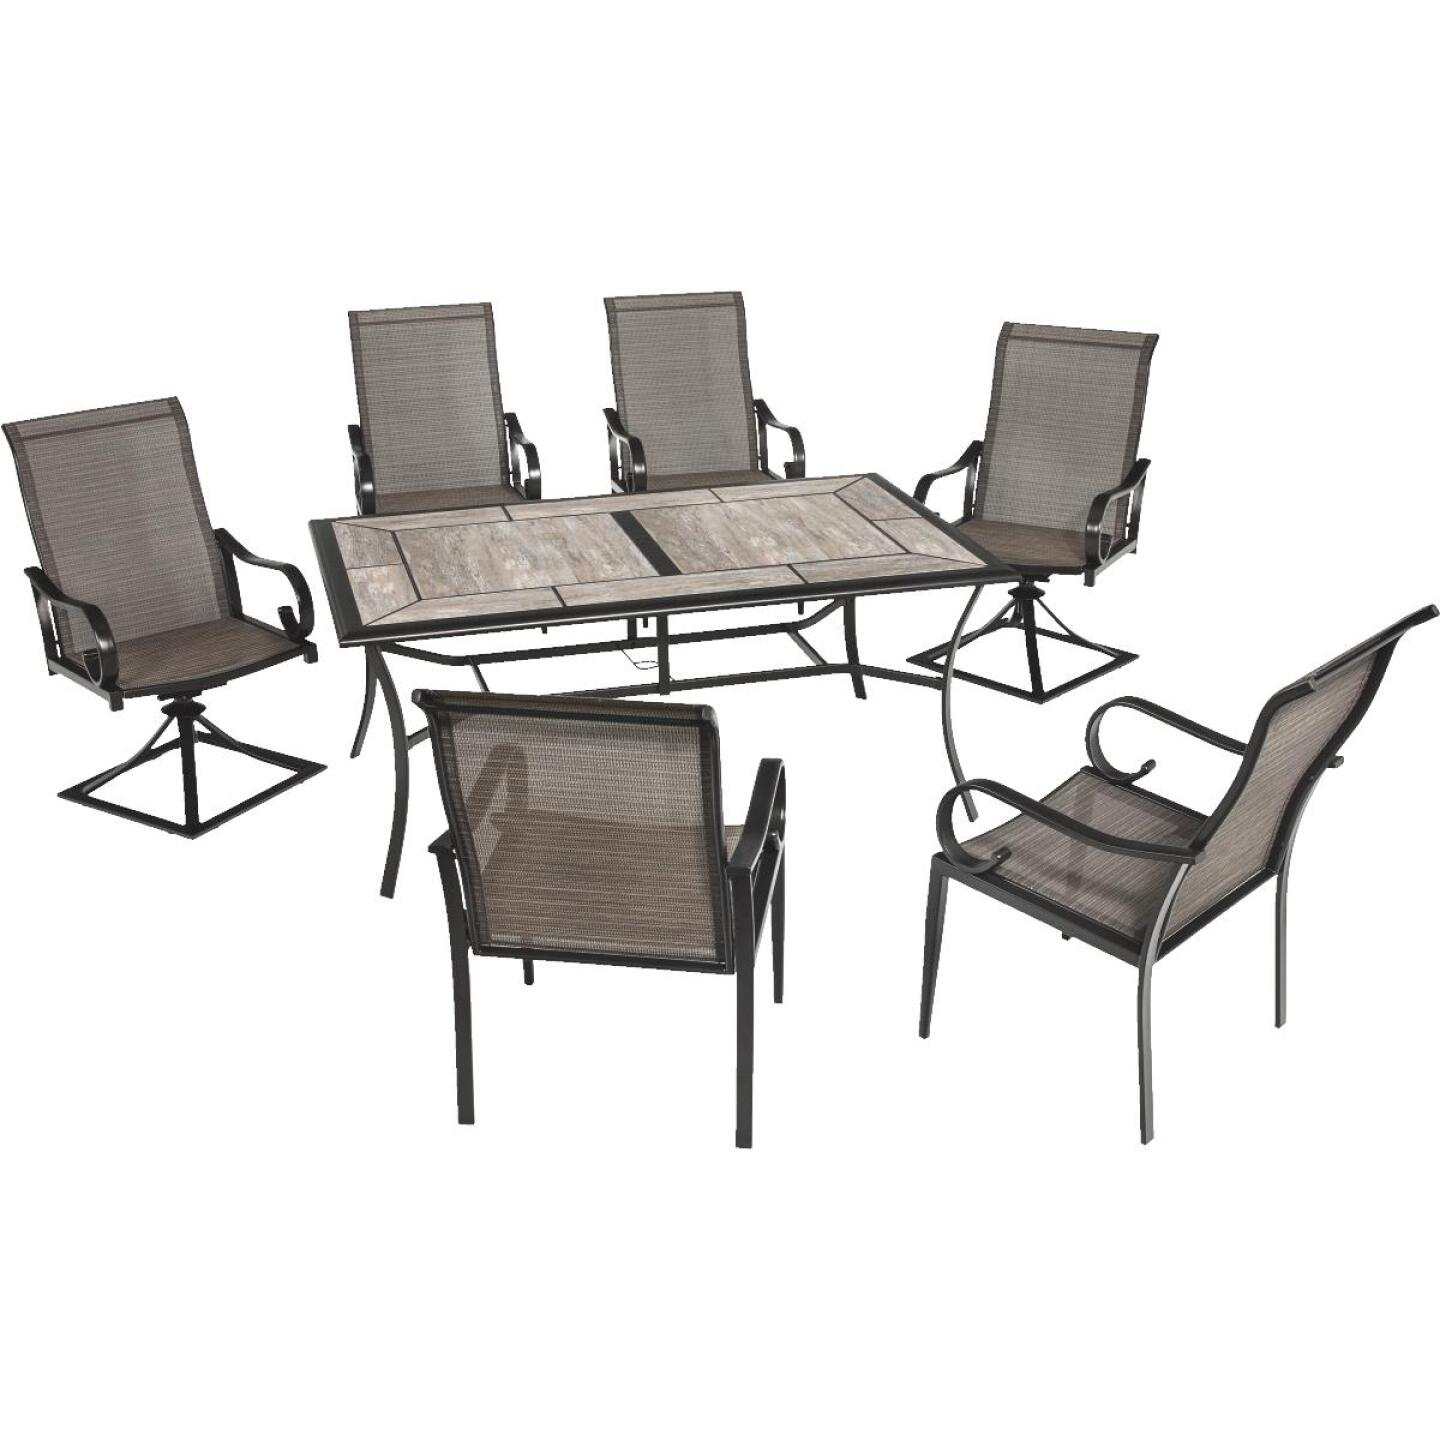 Outdoor Expressions Berkshire 7-Piece Dining Set Image 276